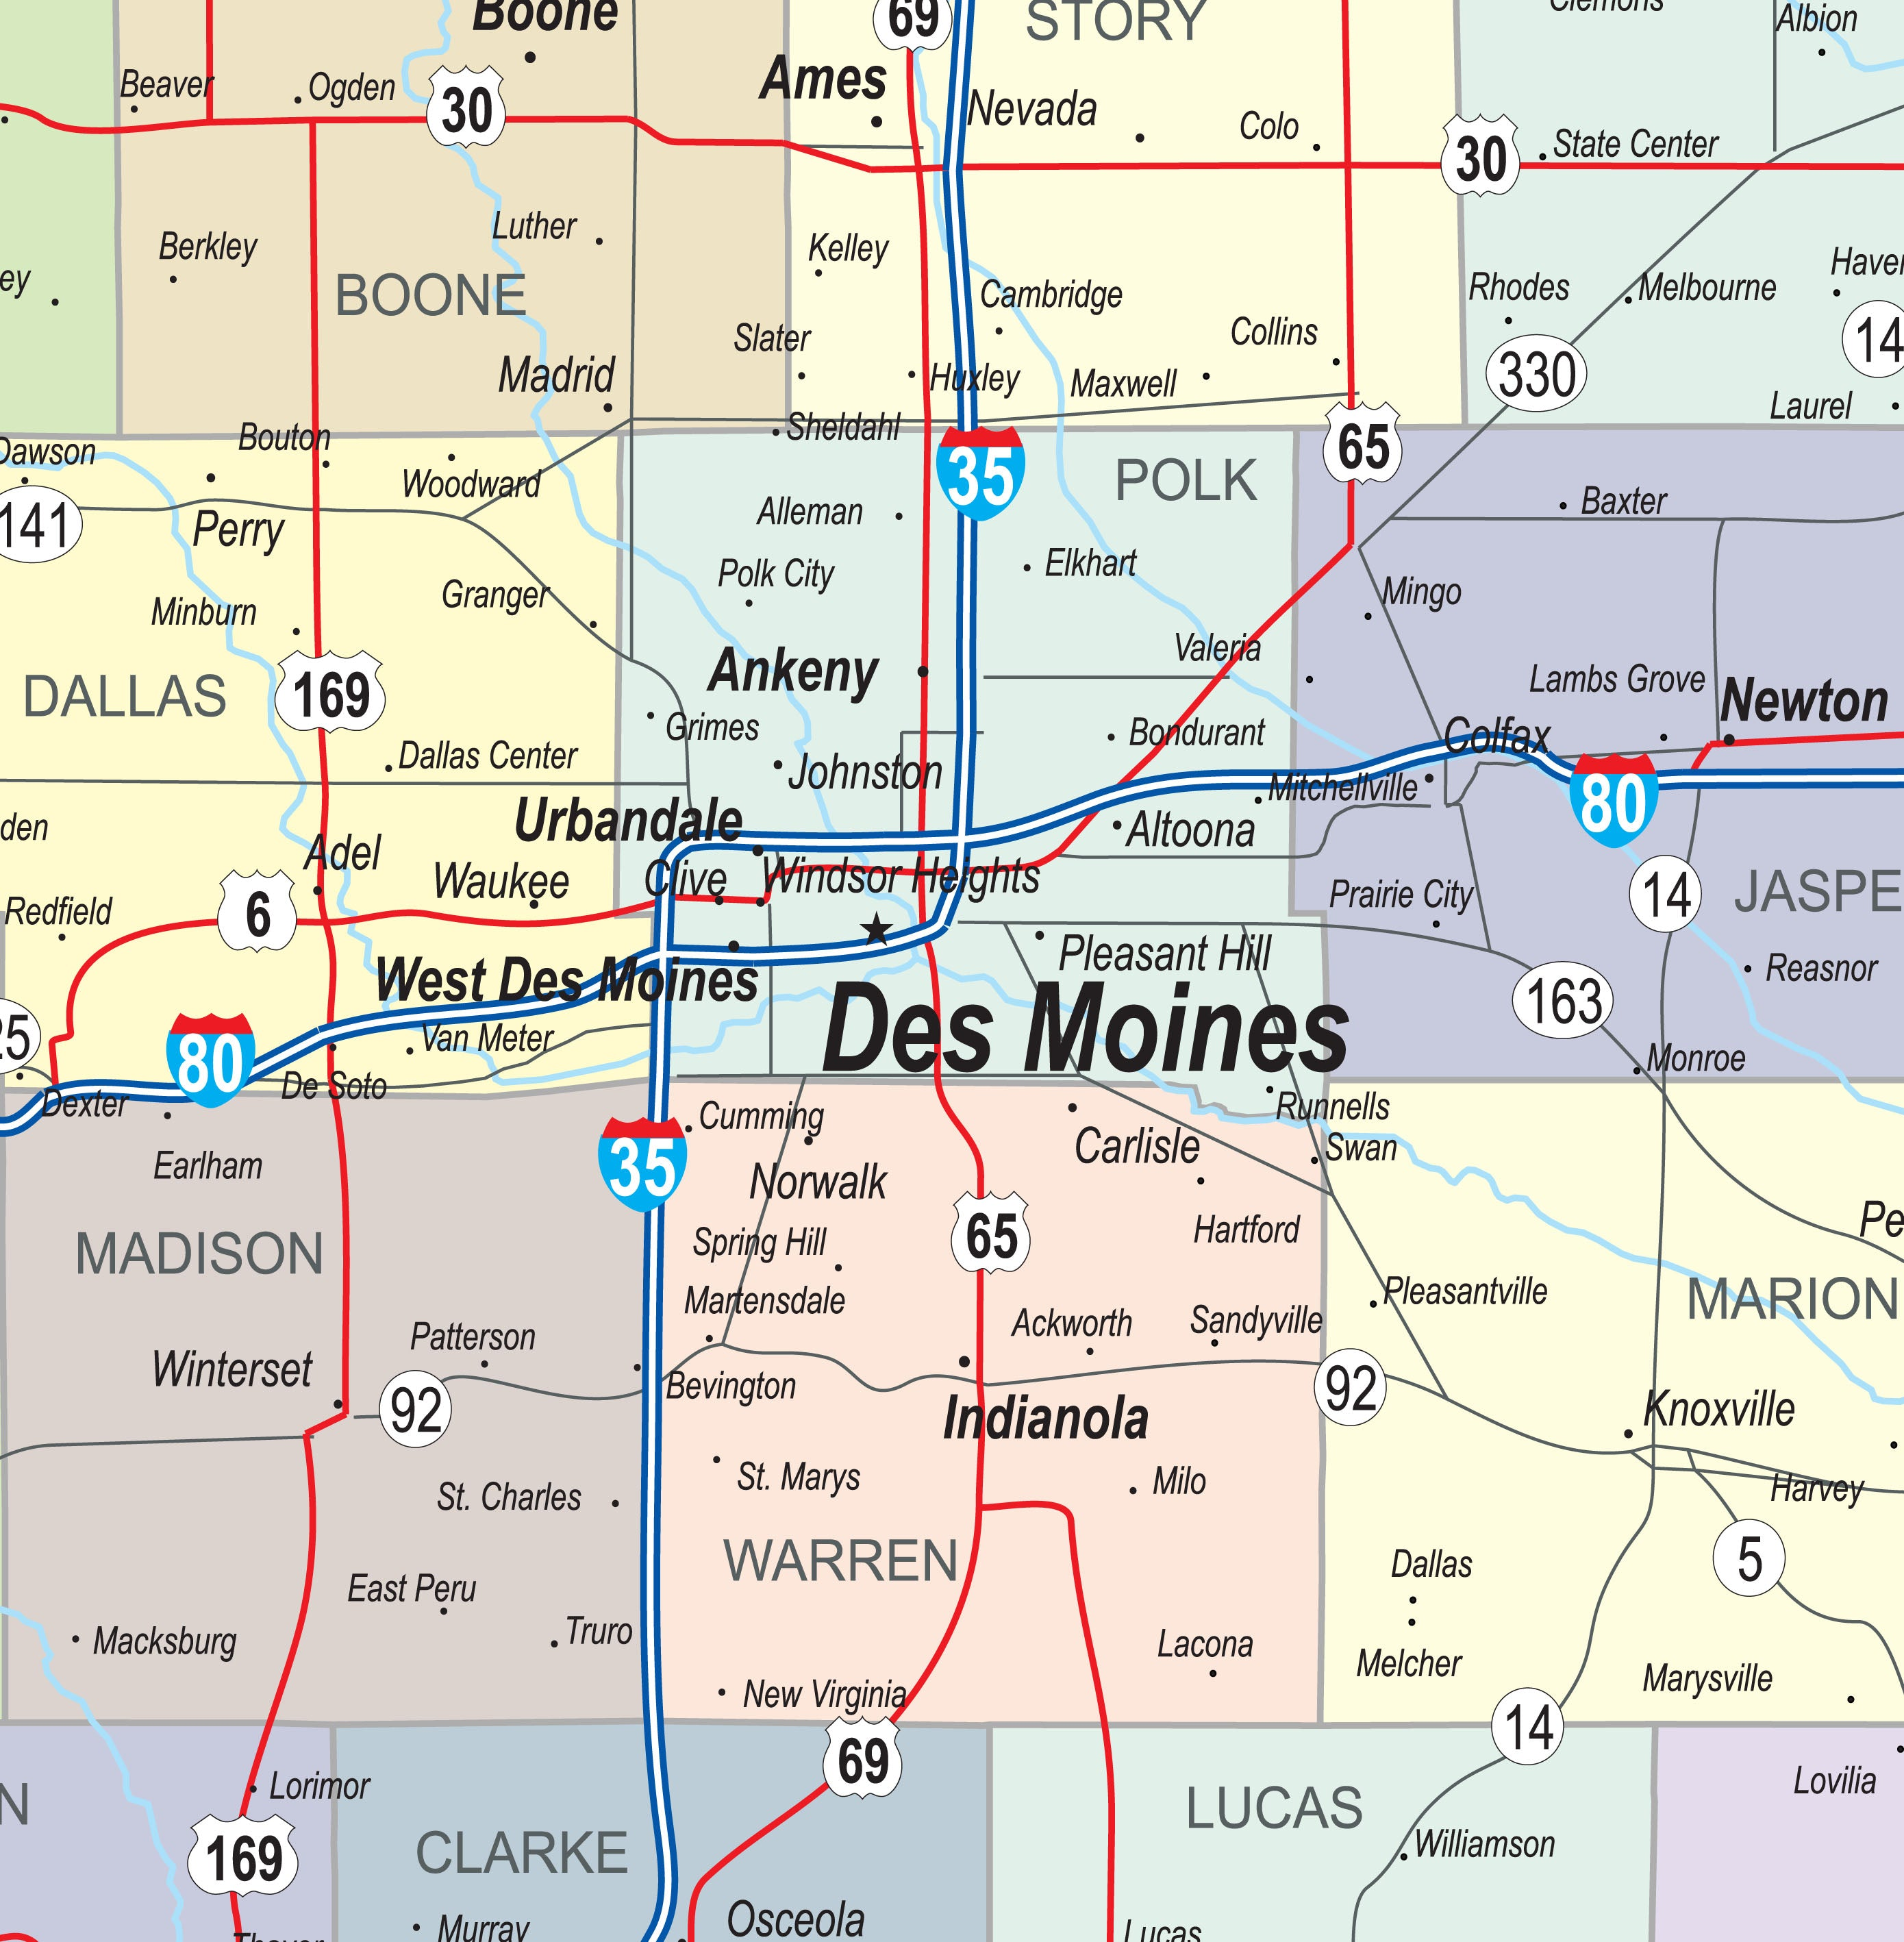 Iowa Map With Highways.Iowa Laminated Wall Map County And Town Map With Highways Gallup Map